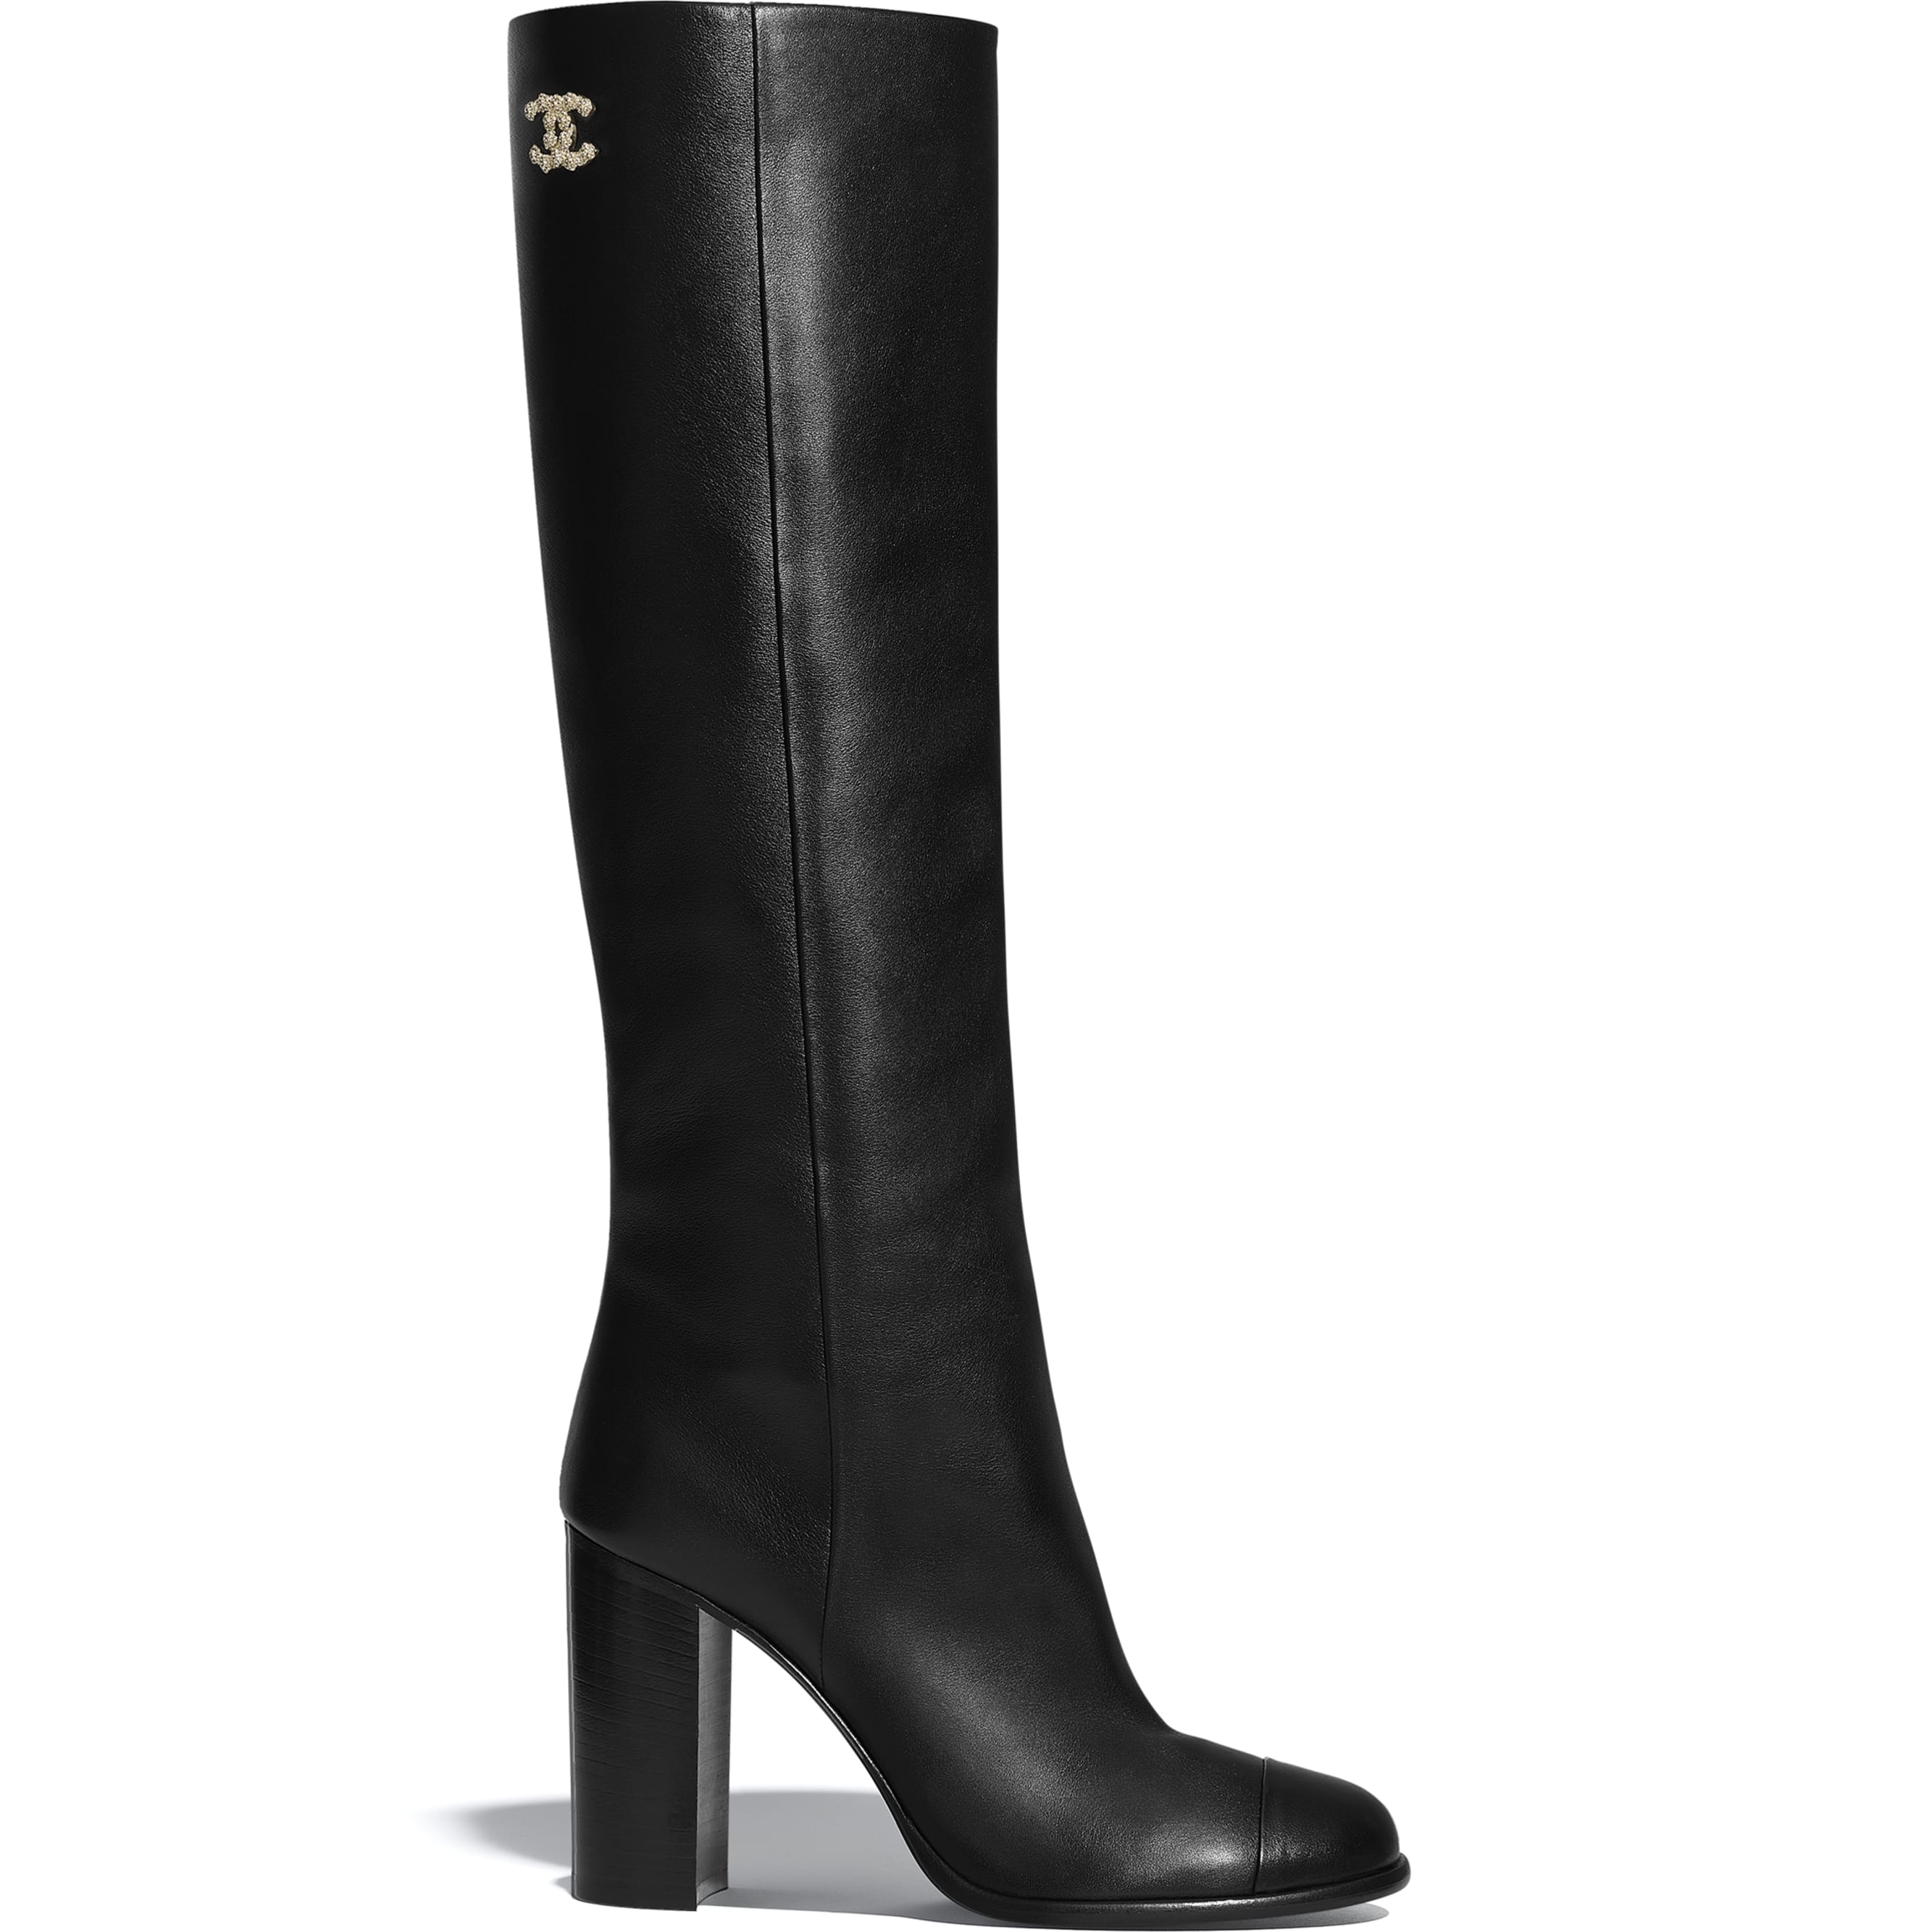 High Boots - Black - Calfskin - CHANEL - Default view - see standard sized version